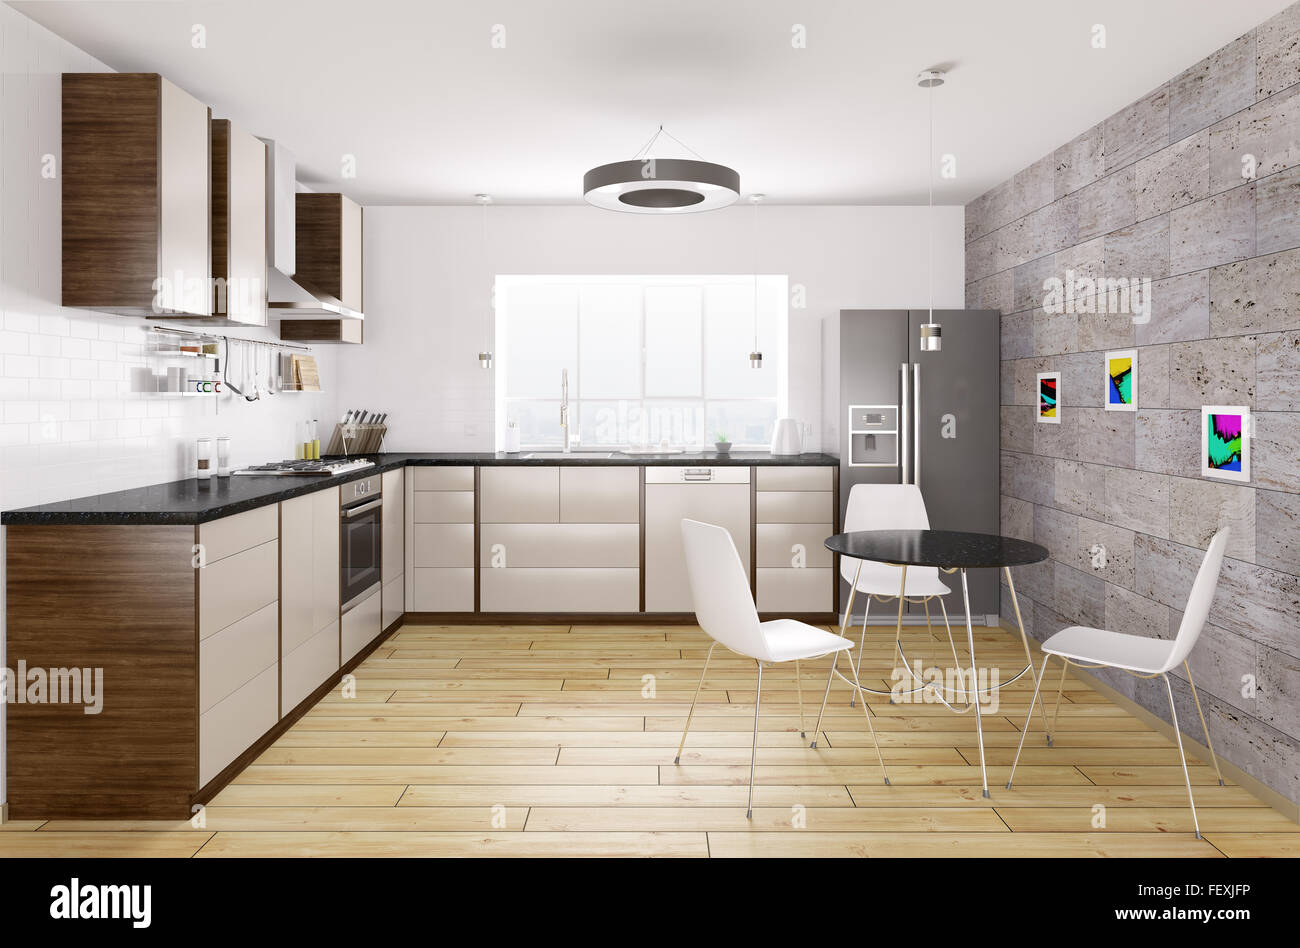 kitchen counter window. Modern Kitchen With Black Granite Counter, Window,table And Chairs Interior 3d Rendering Counter Window W